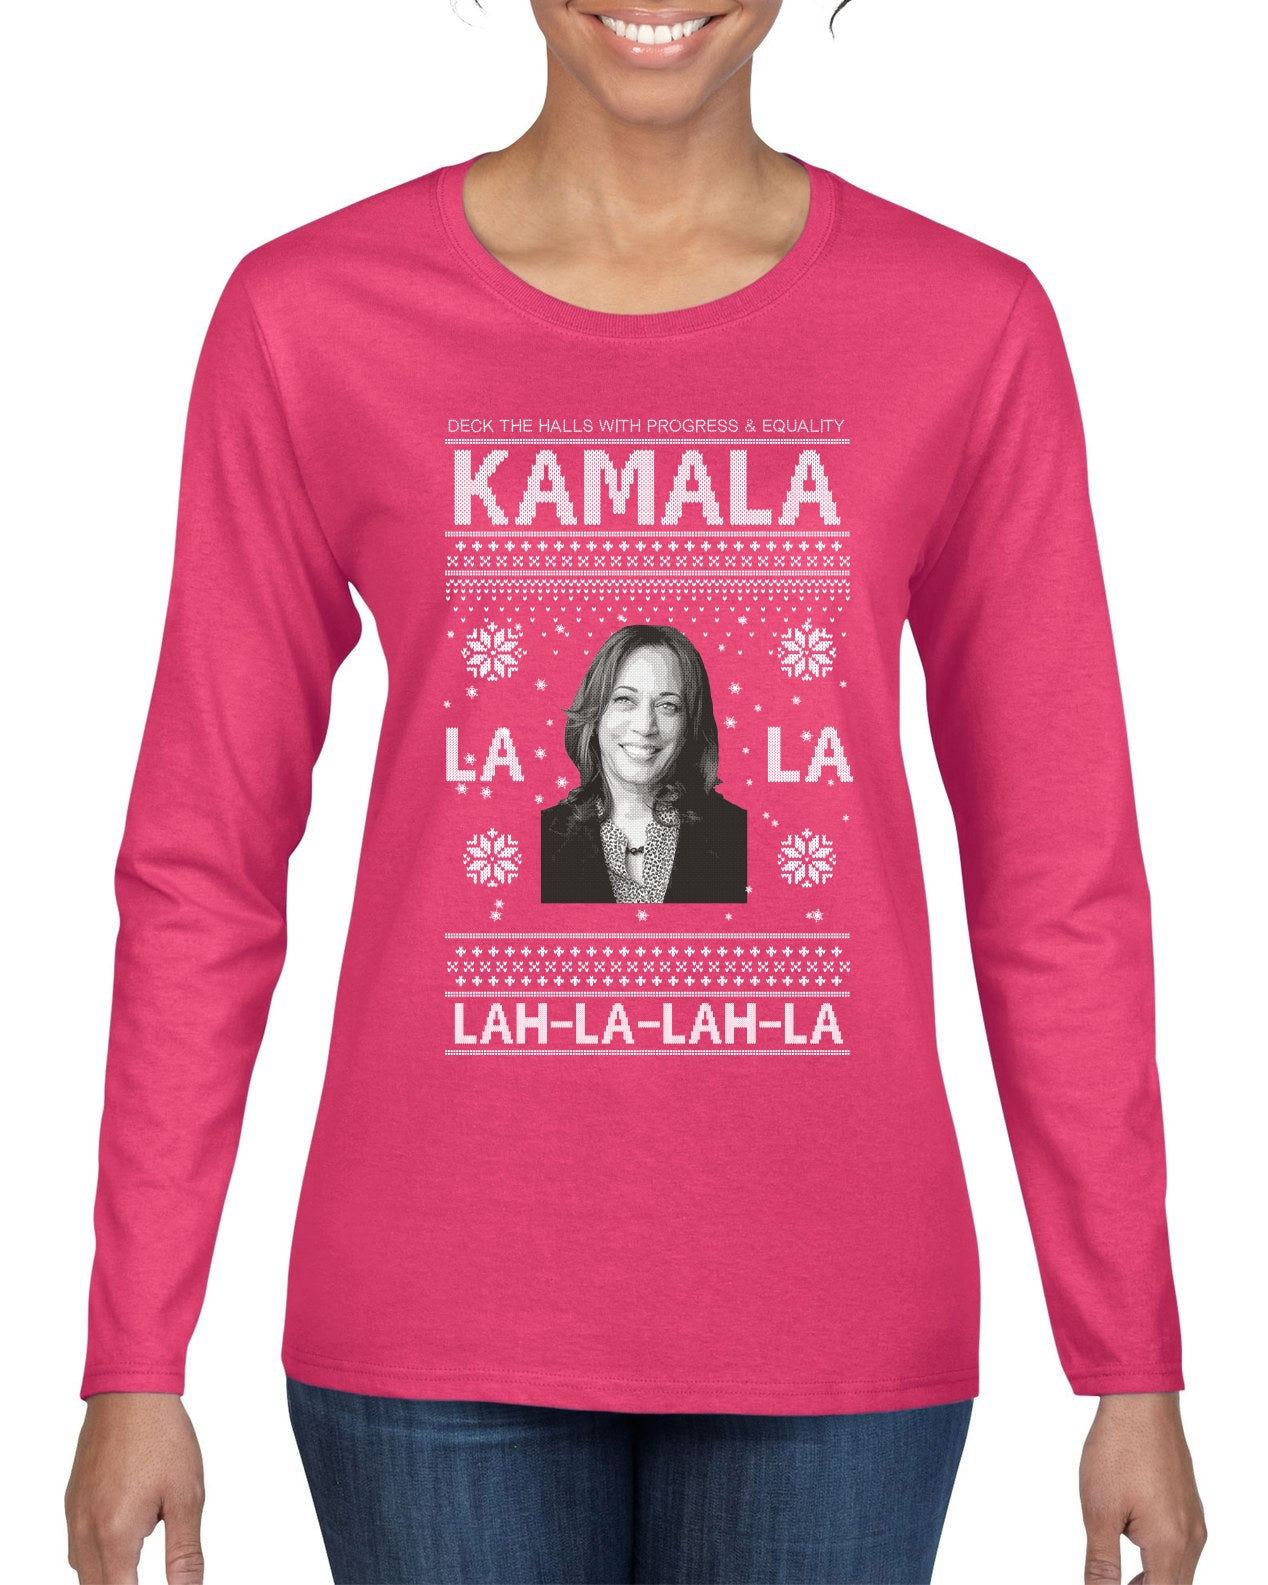 Kamala La La Lah-La-Lah-La Harris 2020 Ugly Christmas Sweater Womens Graphic Long Sleeve T-Shirt